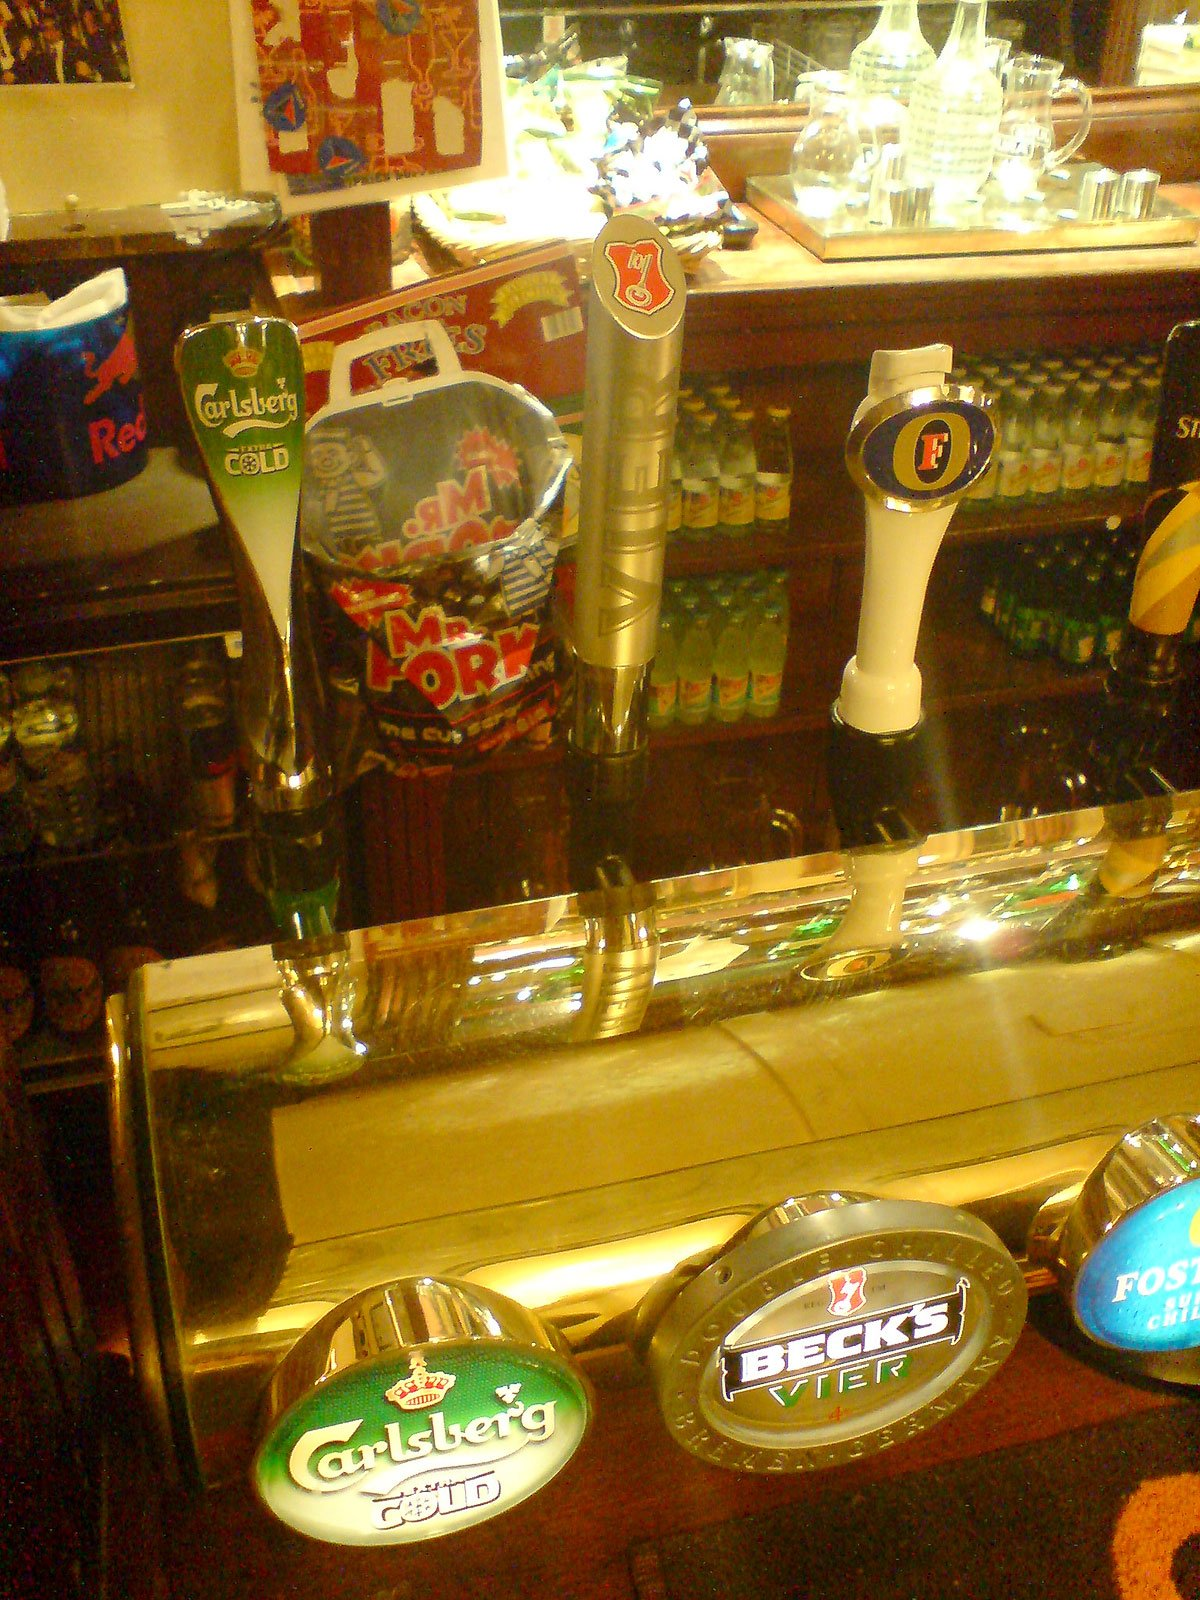 The Star and Garter Greenwich London Pub Review2 - The Star and Garter, Greenwich, London - Pub Review